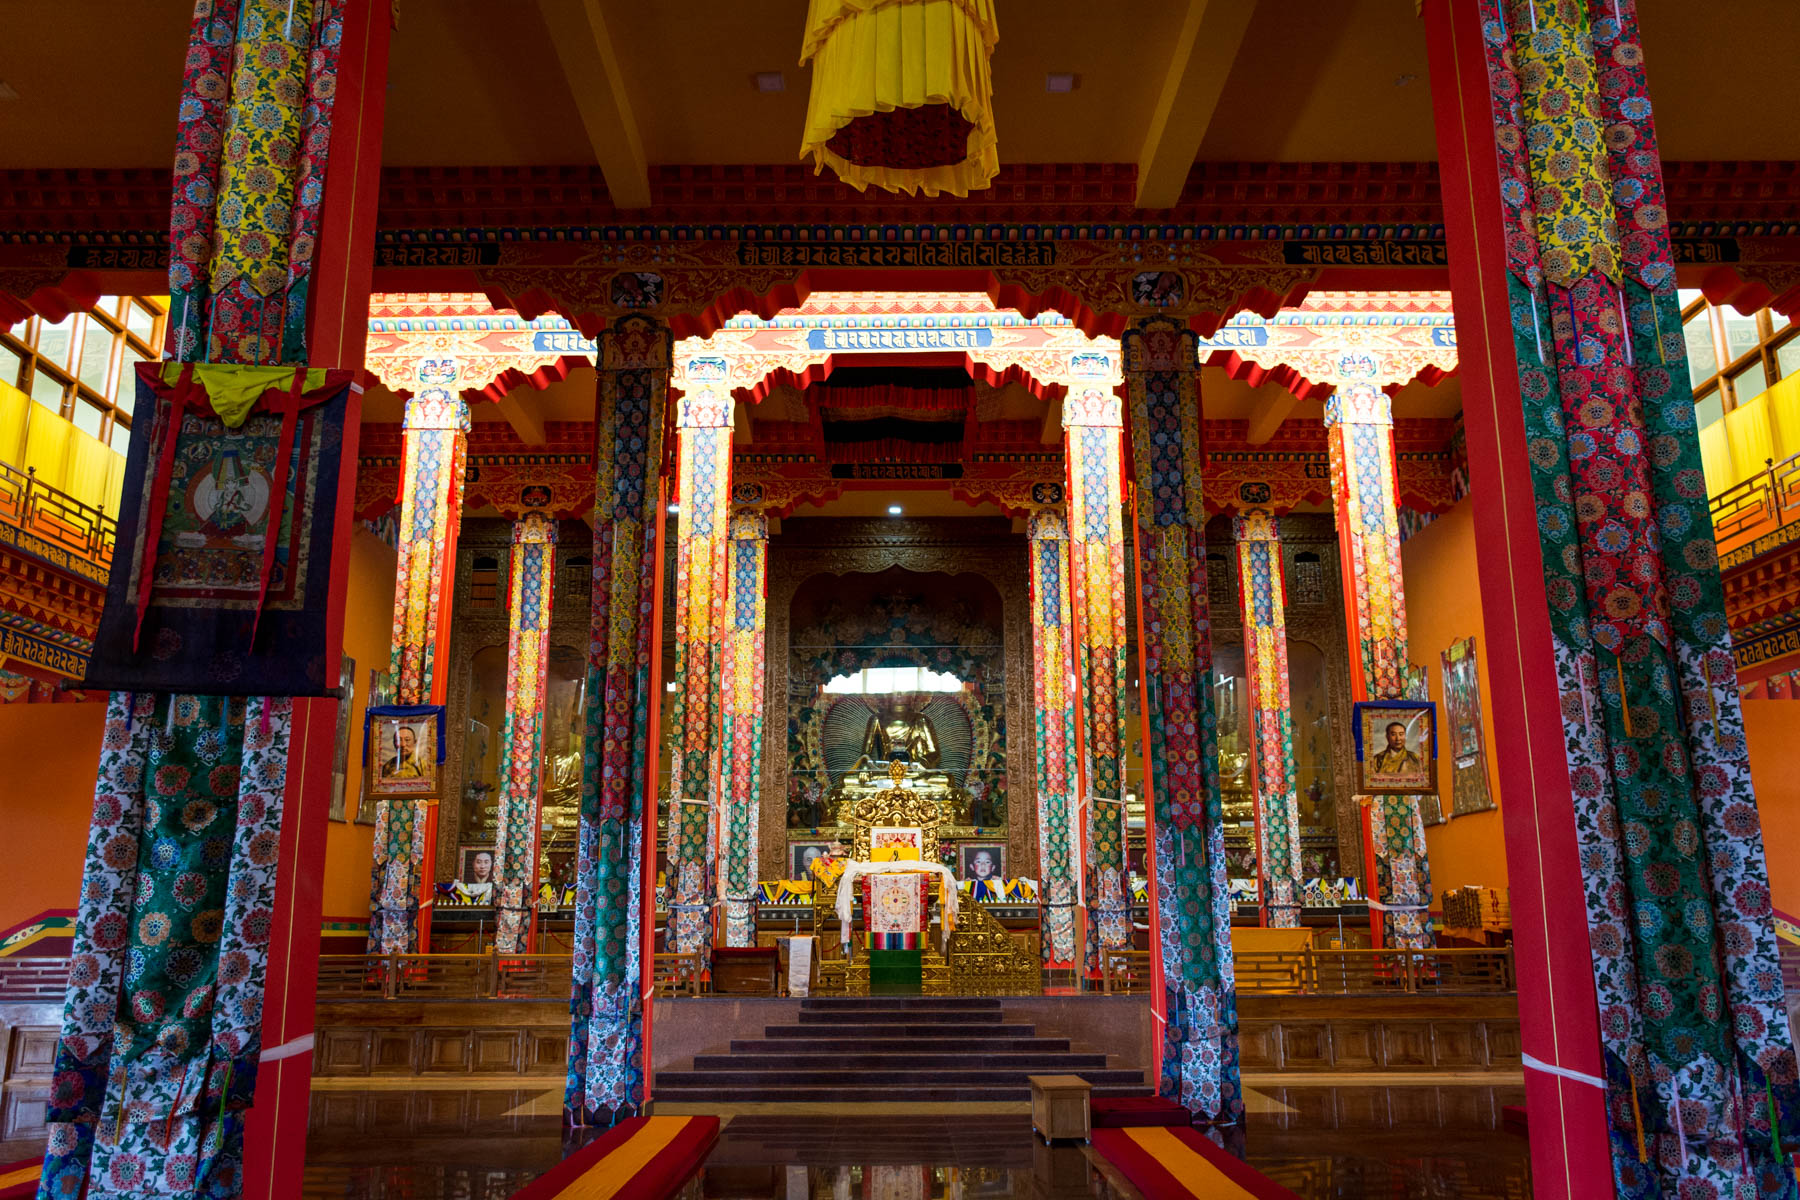 Visiting Namdroling Monastery in Bylakuppe, India - The interior of Tashi Lhunpo Buddhist monastery in Bylakuppe, Karnataka, India - Lost With Purpose